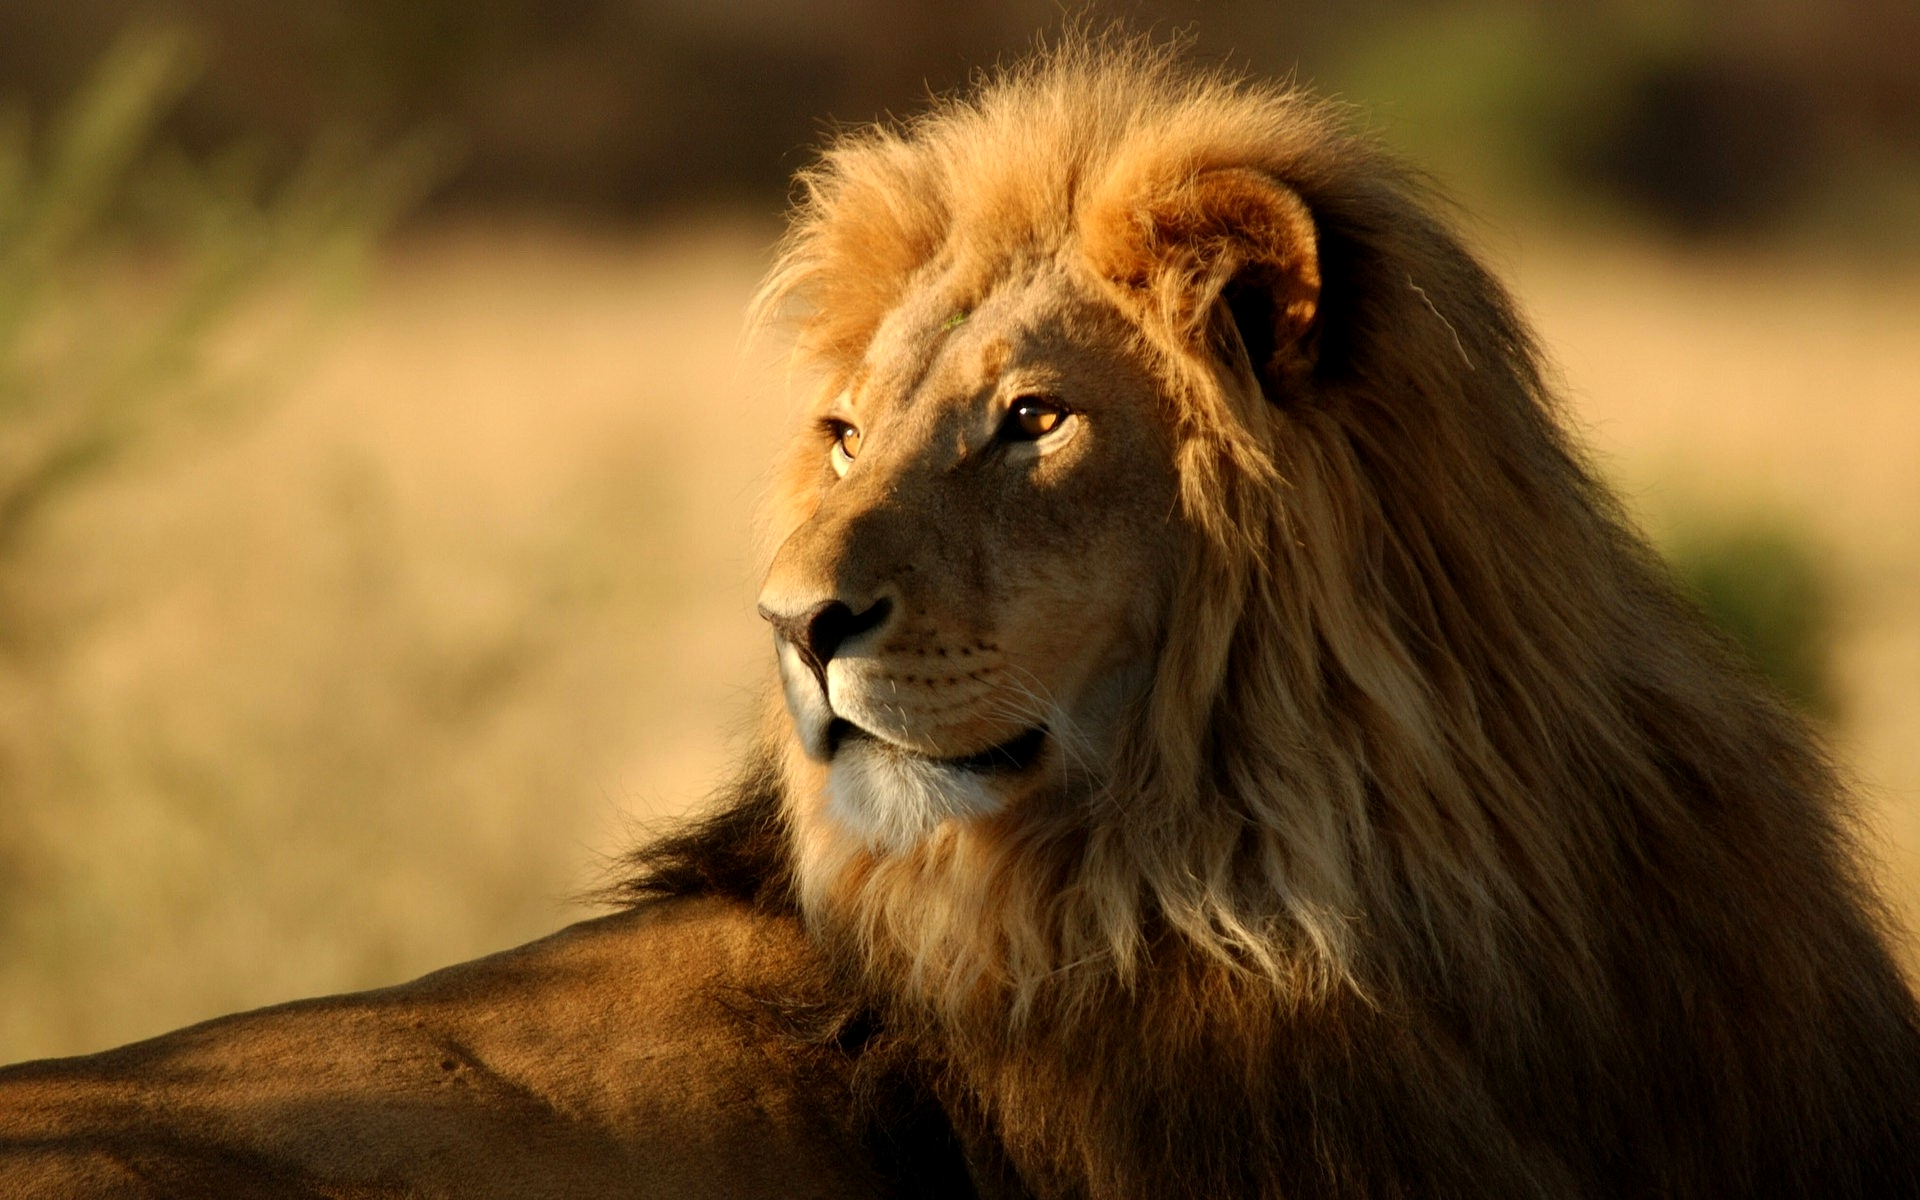 Lion Wallpaper HD Pictures One HD Wallpaper Pictures 1920x1200